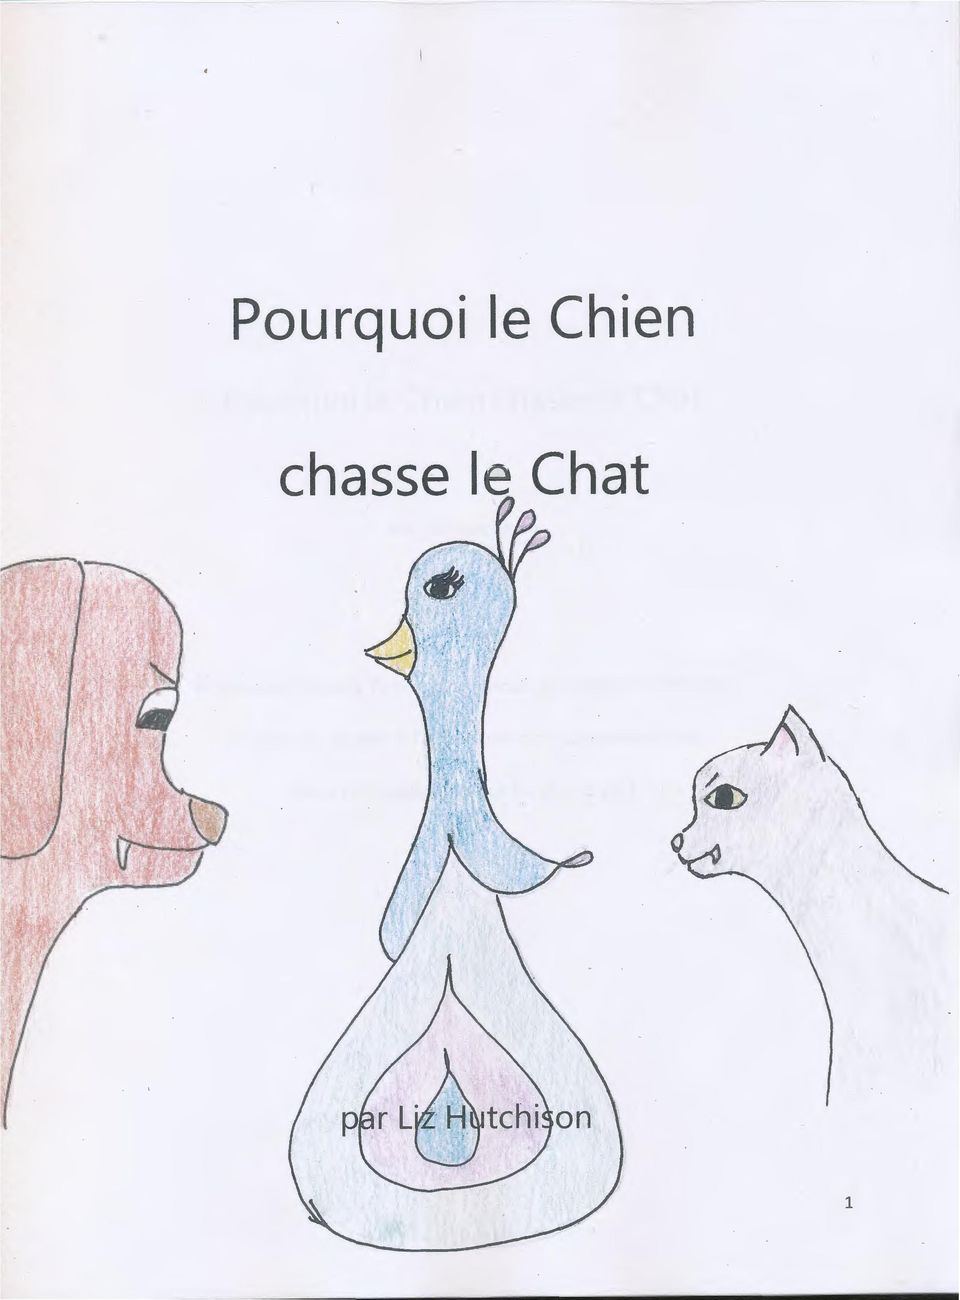 chasse le